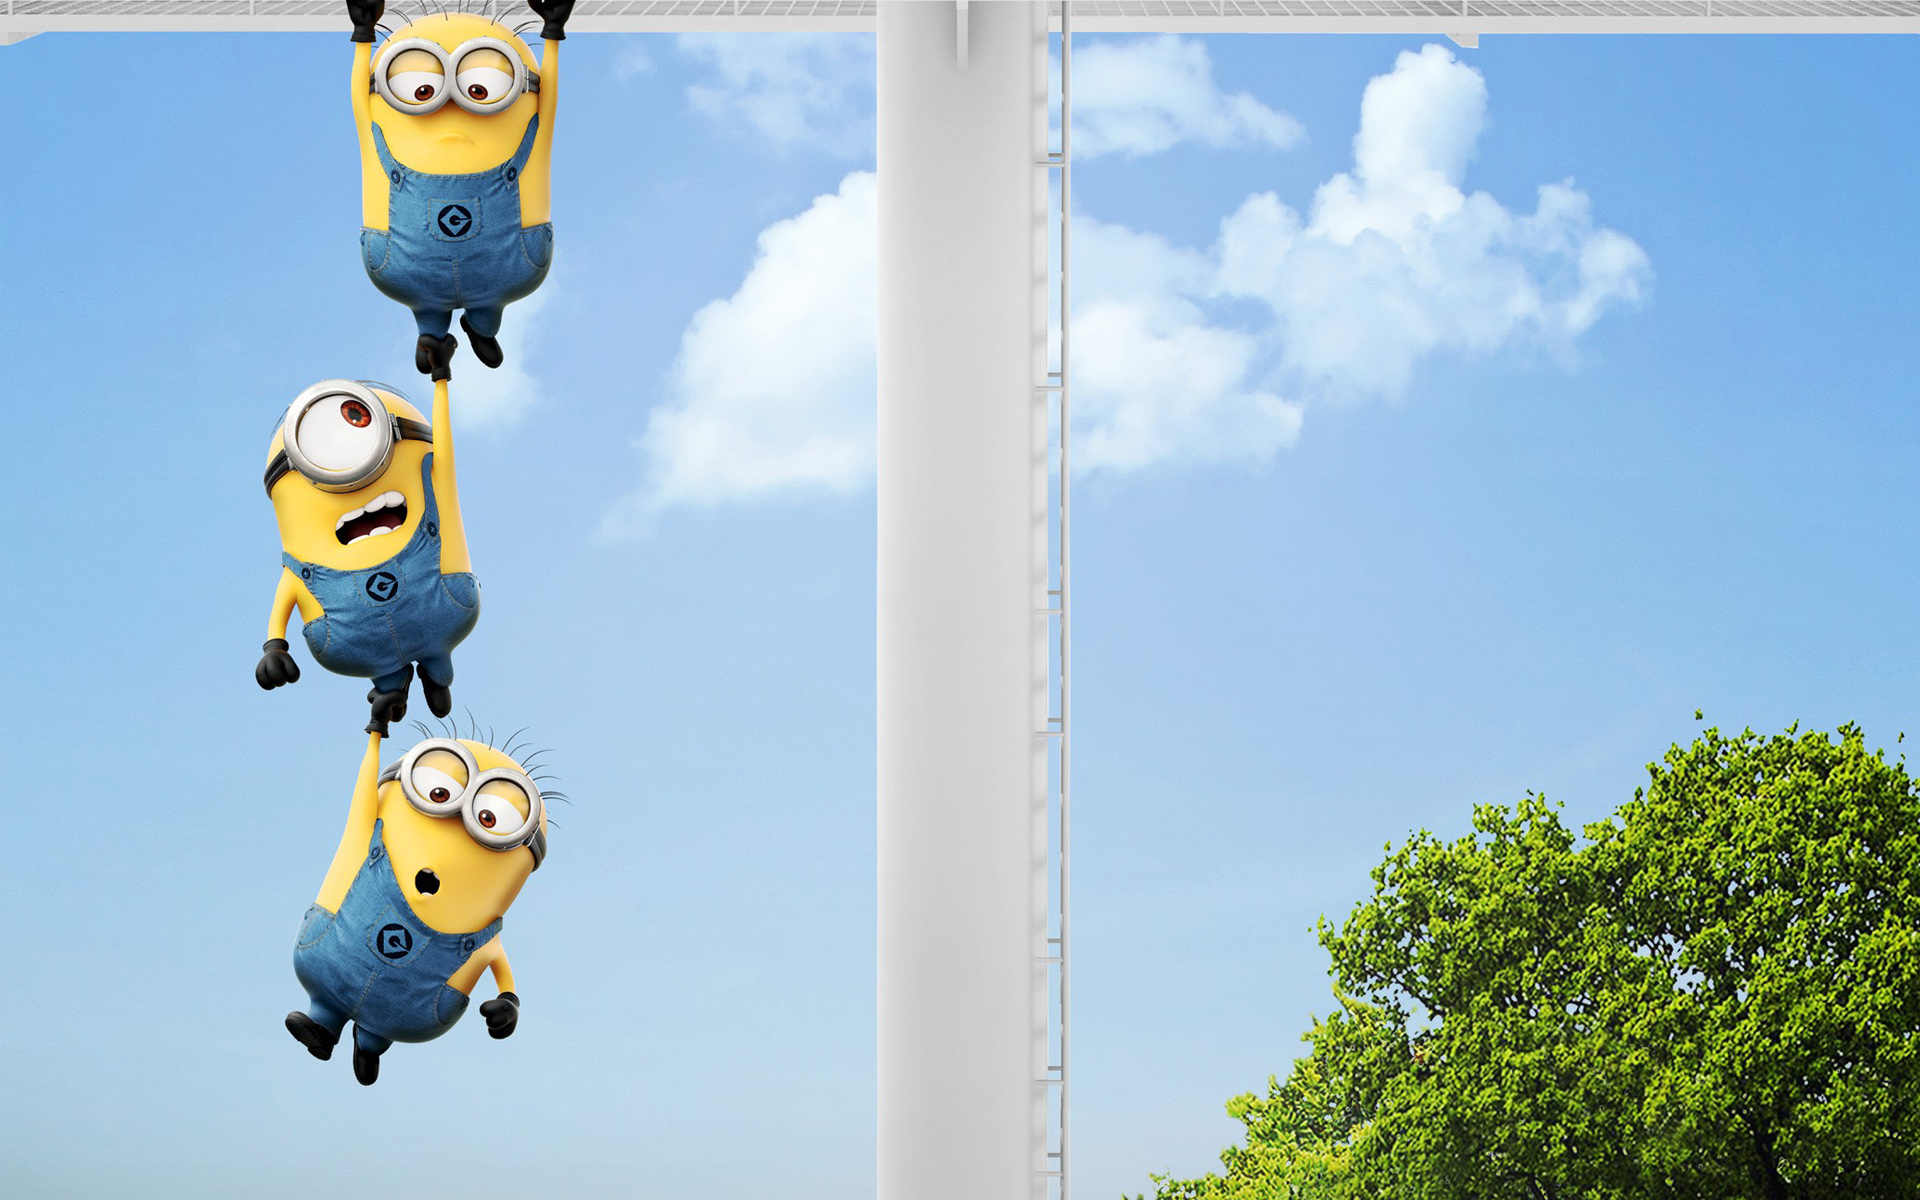 Cute Minion Wallpapers HD for Desktop 19 1920x1200